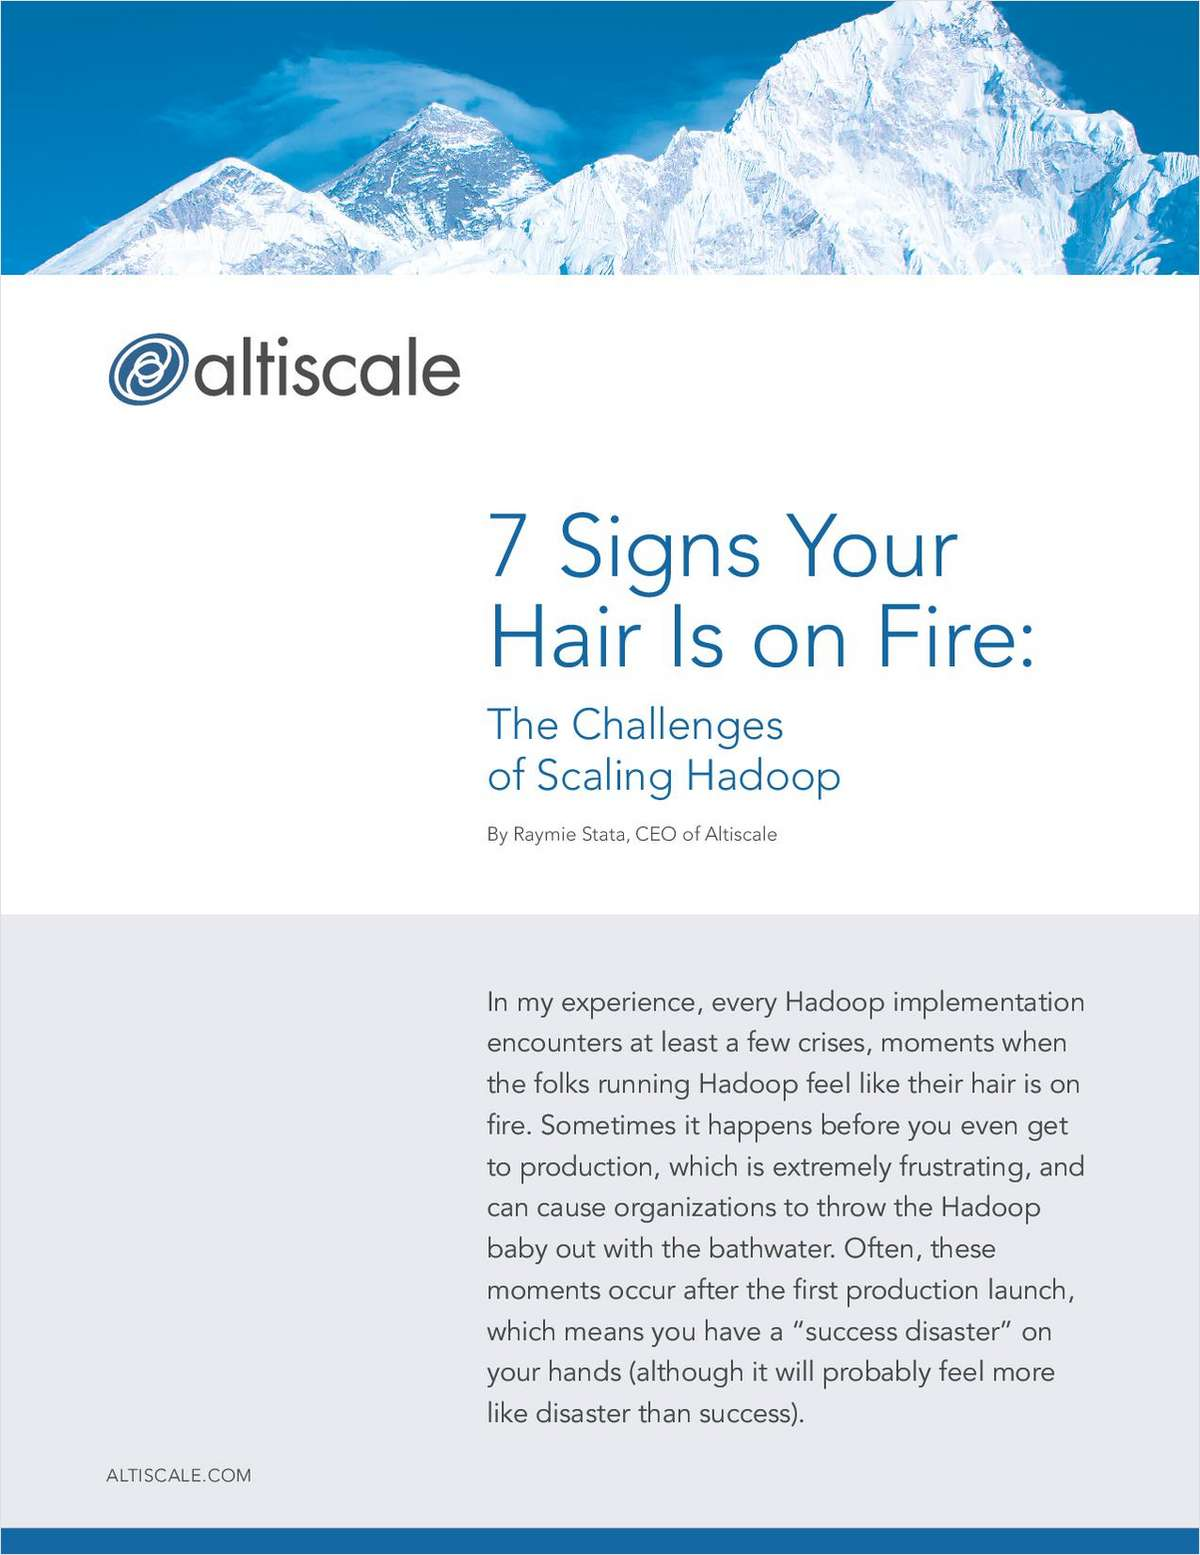 7 Signs Your Hair Is on Fire: The Challenges of Scaling Hadoop